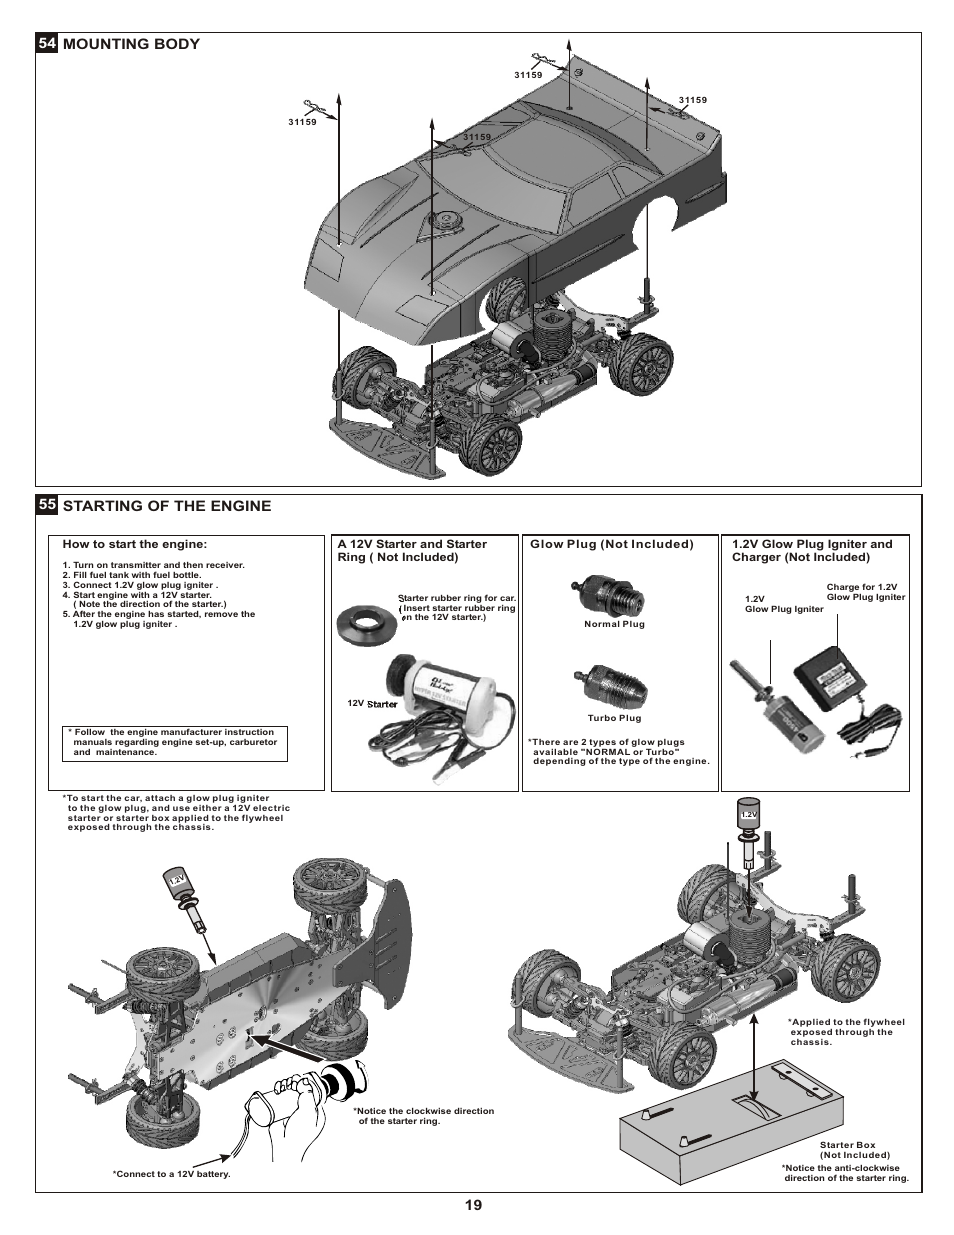 55 starting of the engine 54 mounting body | OFNA Racing Late Model Dirt  Oval User Manual | Page 23 / 29